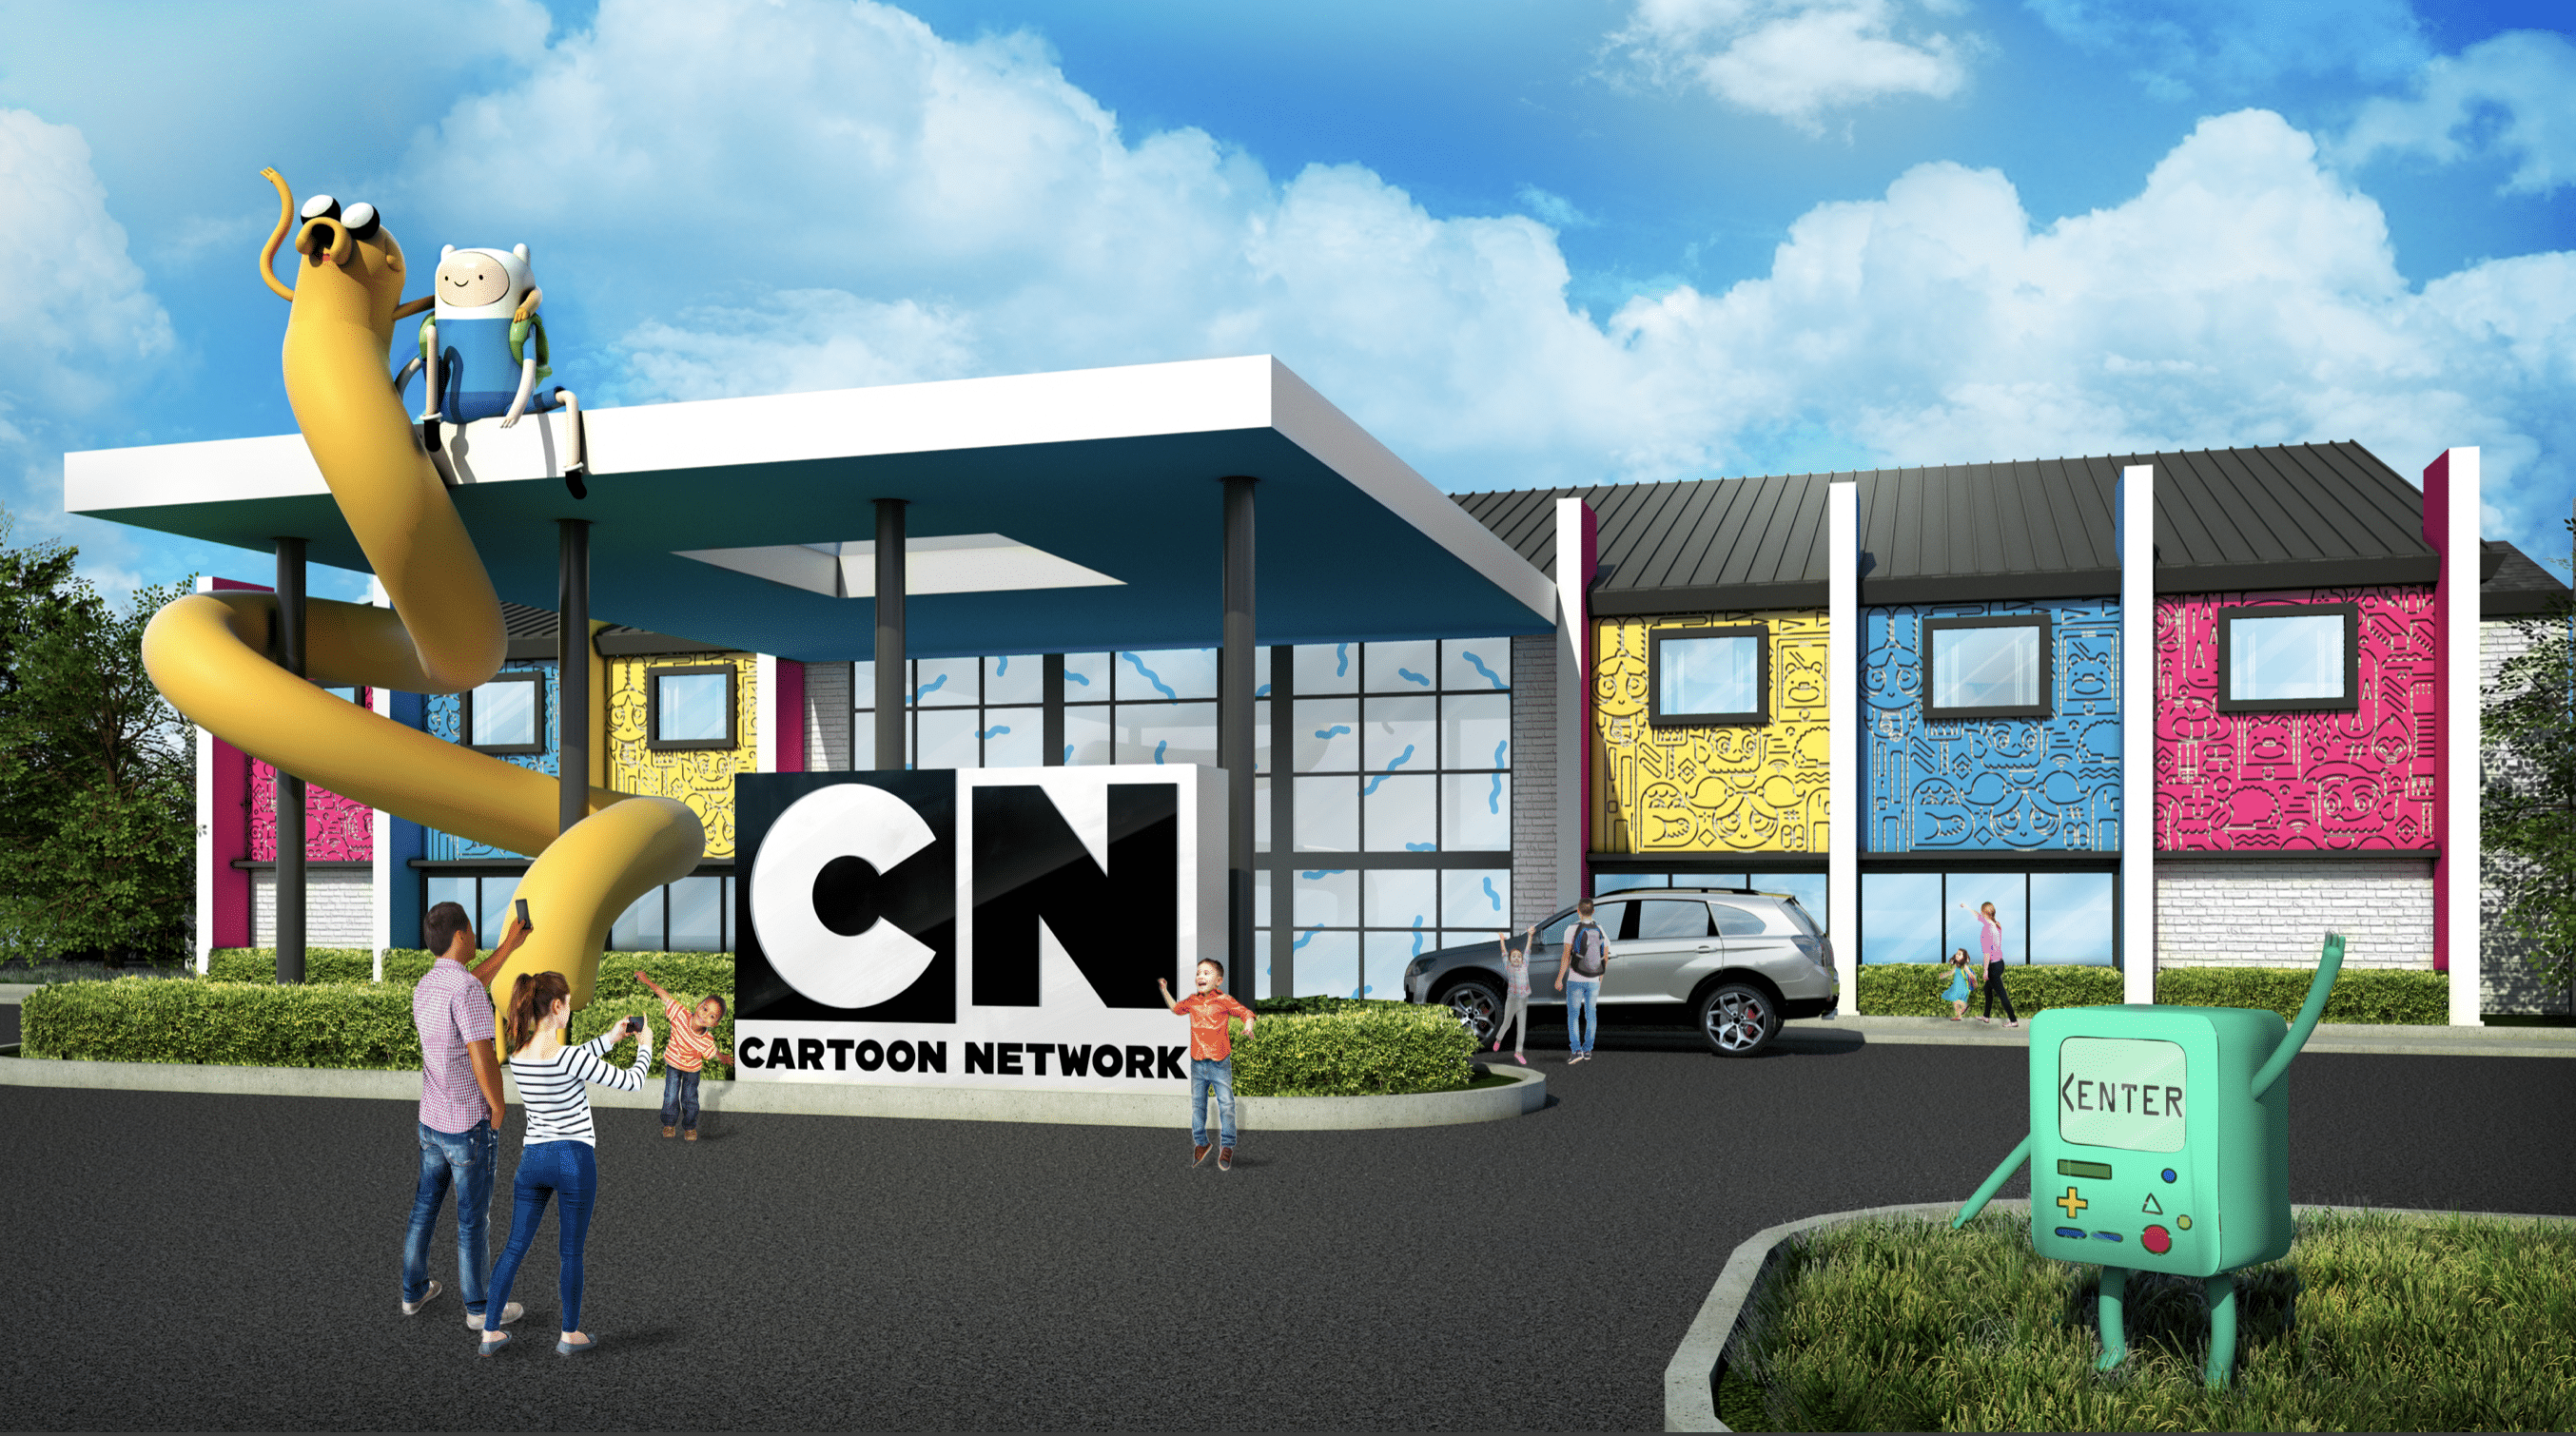 First Ever Cartoon Network Hotel To Open In Pennsylvania In Summer 2019